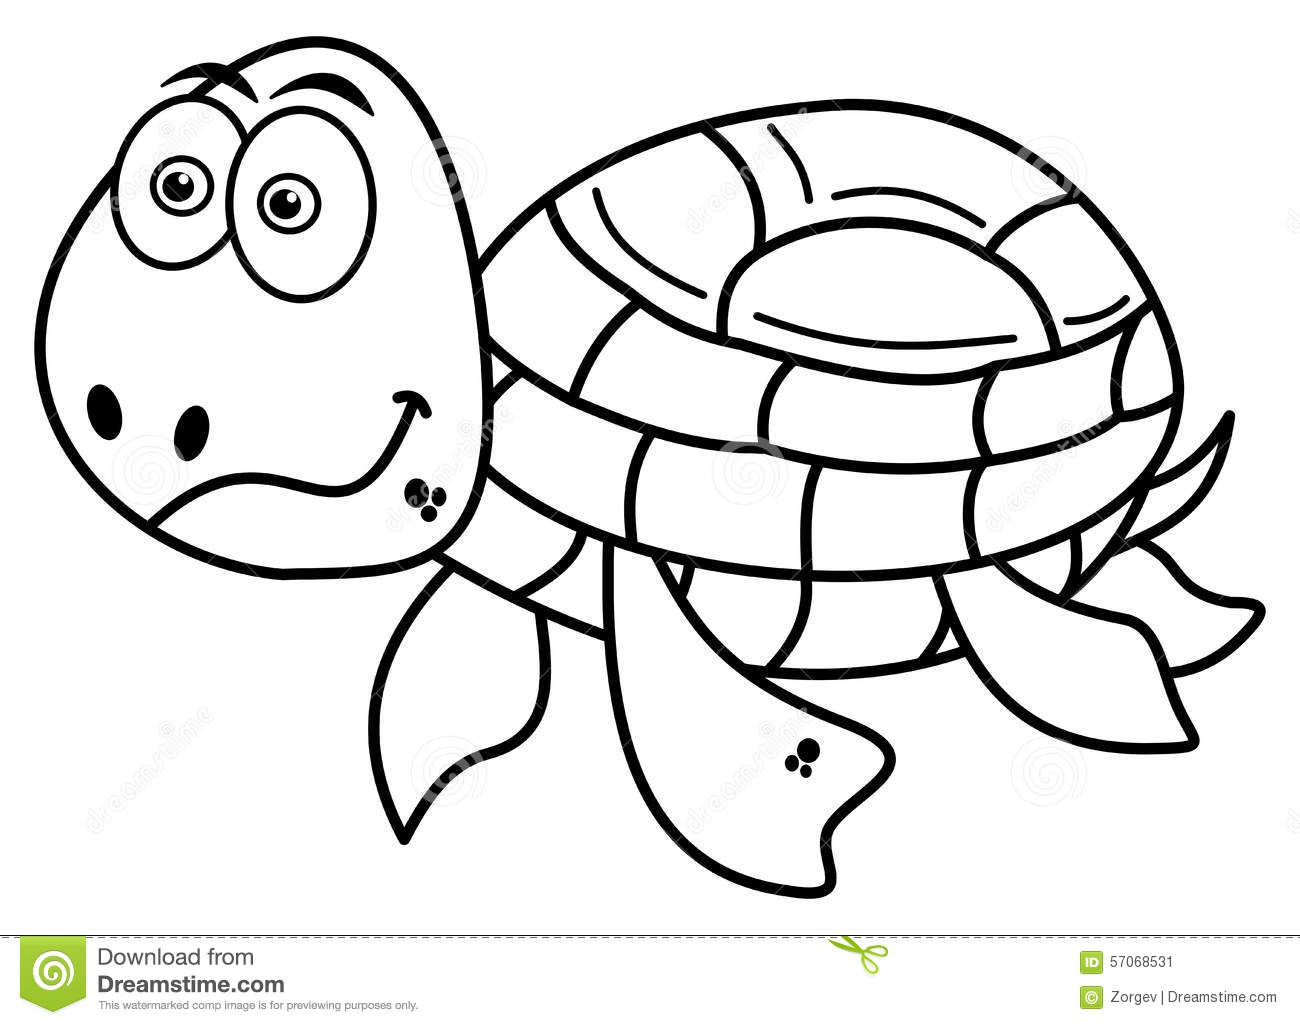 Abstract Turtle Coloring Pages : Abstract turtle coloring pages for adults sketch page